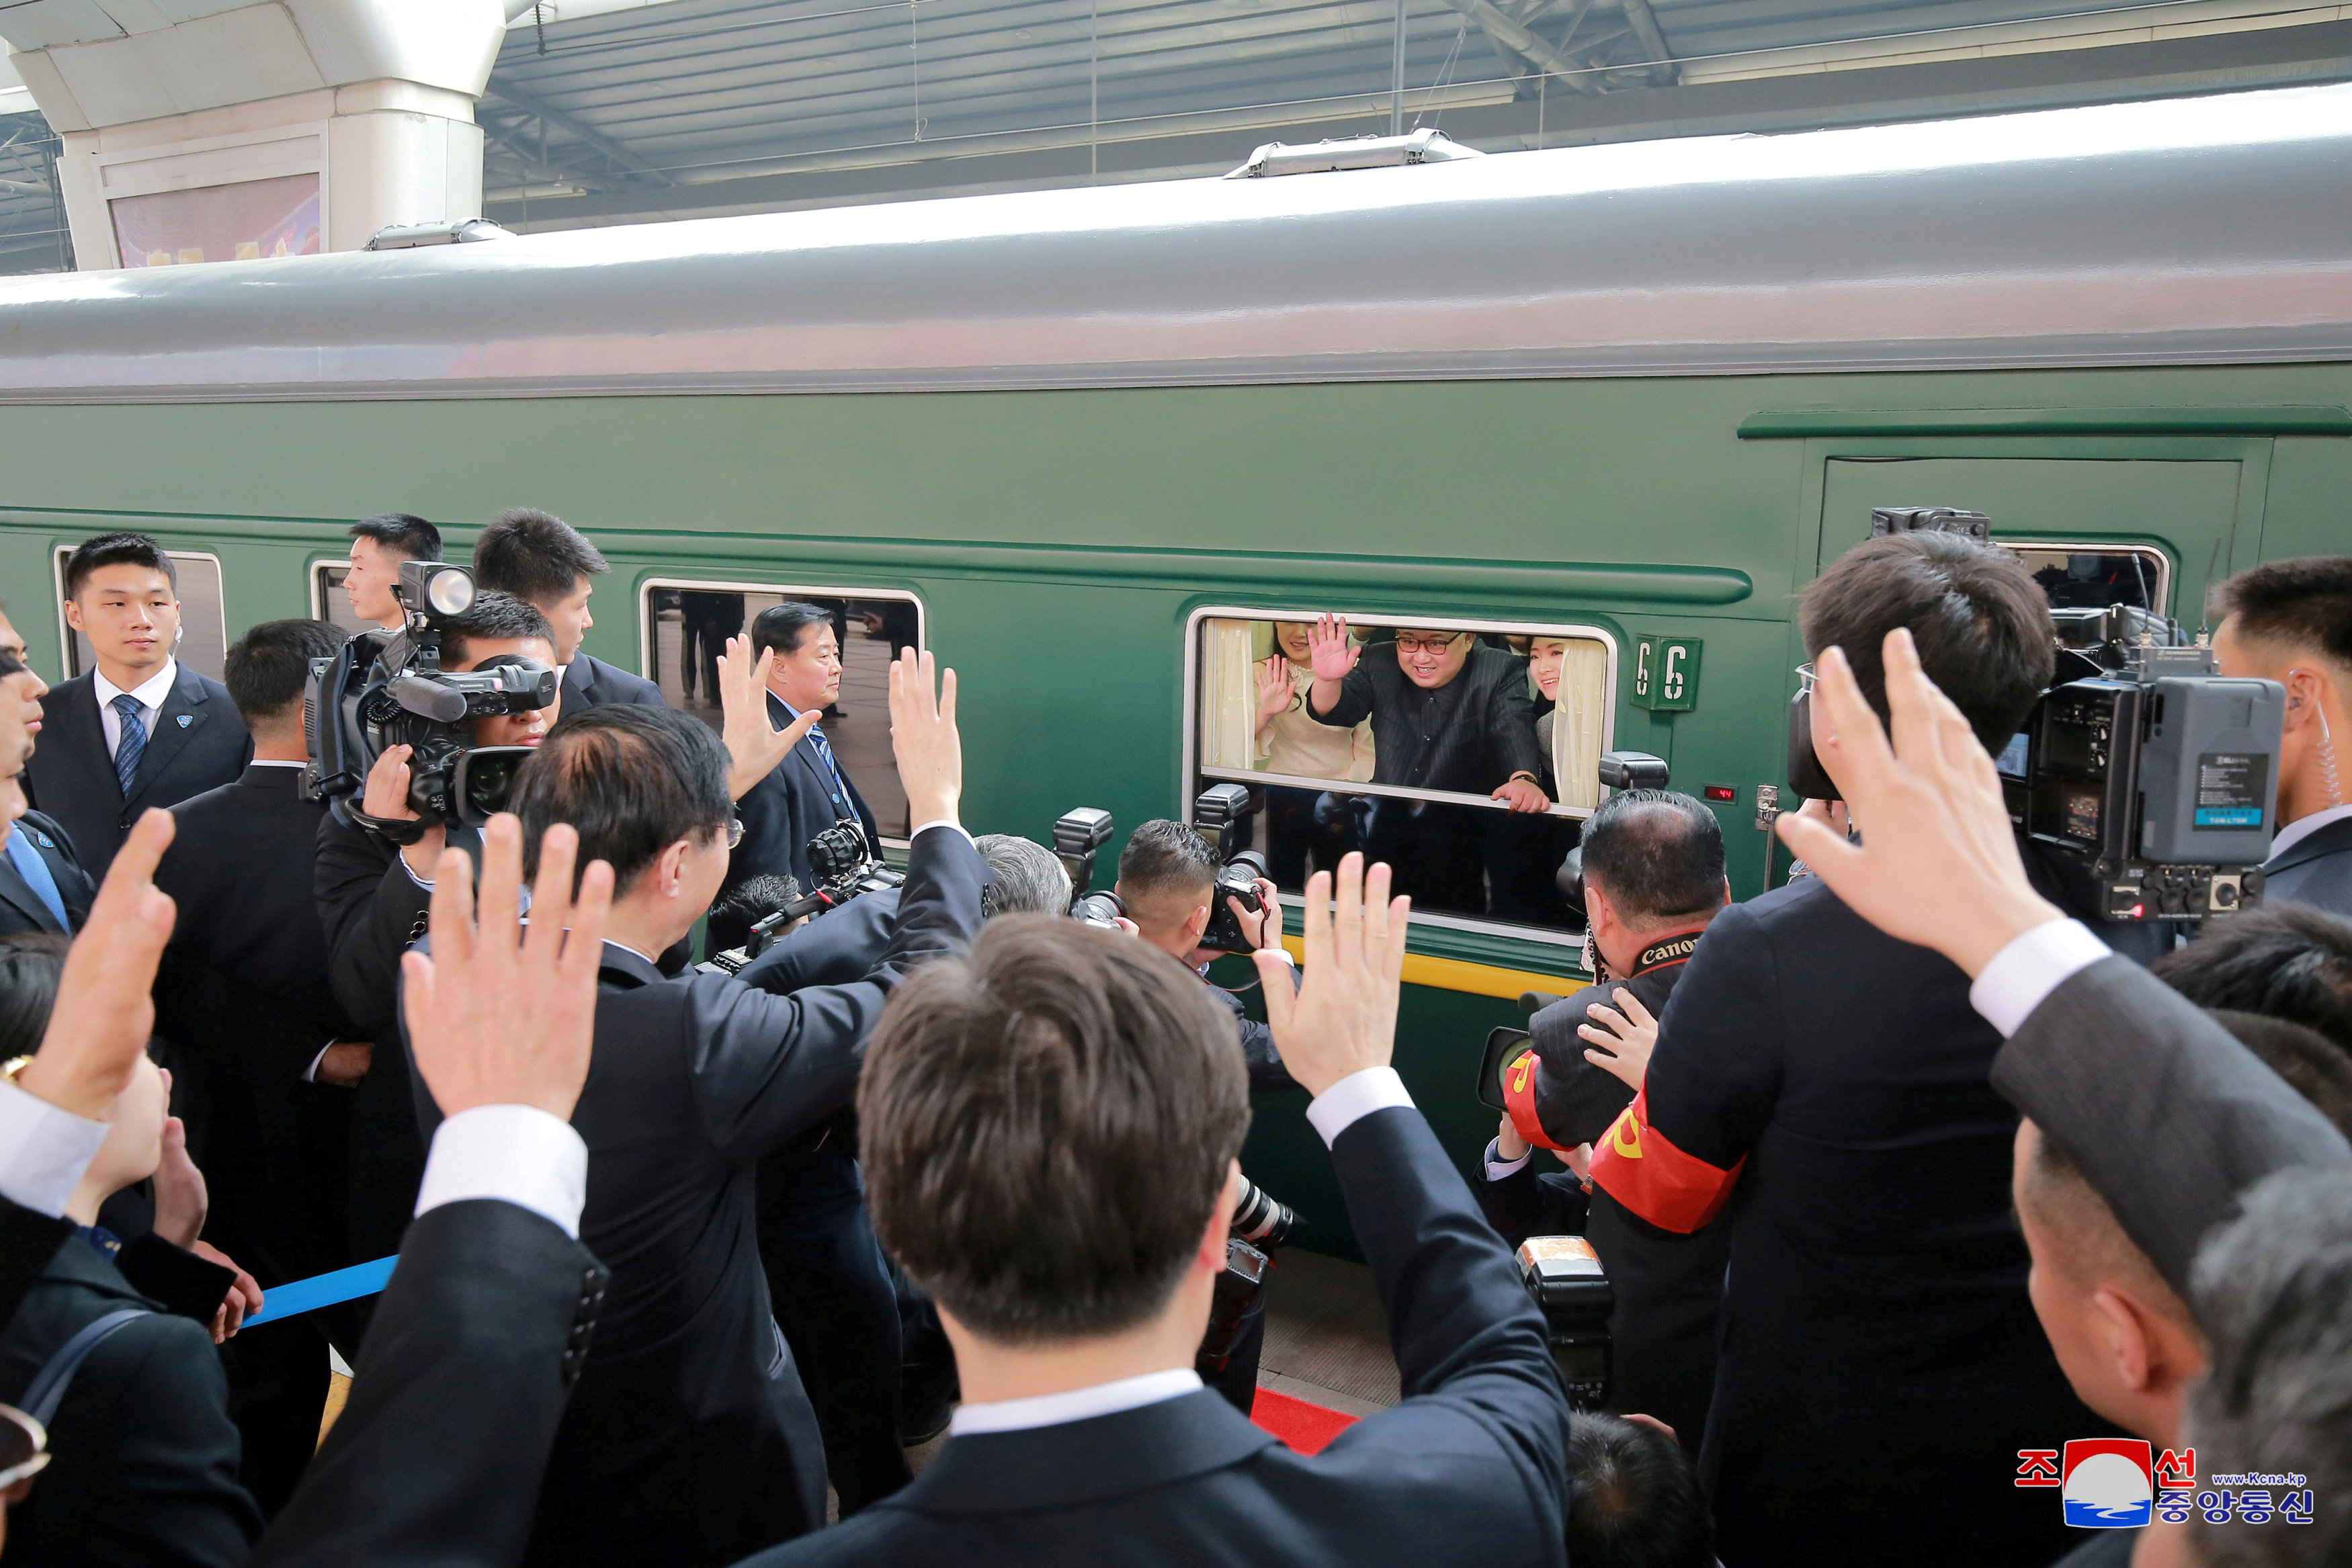 FILE PHOTO: North Korean leader Kim Jong Un waves from a train, as he paid an unofficial visit to China, in this undated photo released by North Korea's Korean Central News Agency (KCNA) in Pyongyang March 28, 2018. KCNA/via Reuters/File Photo